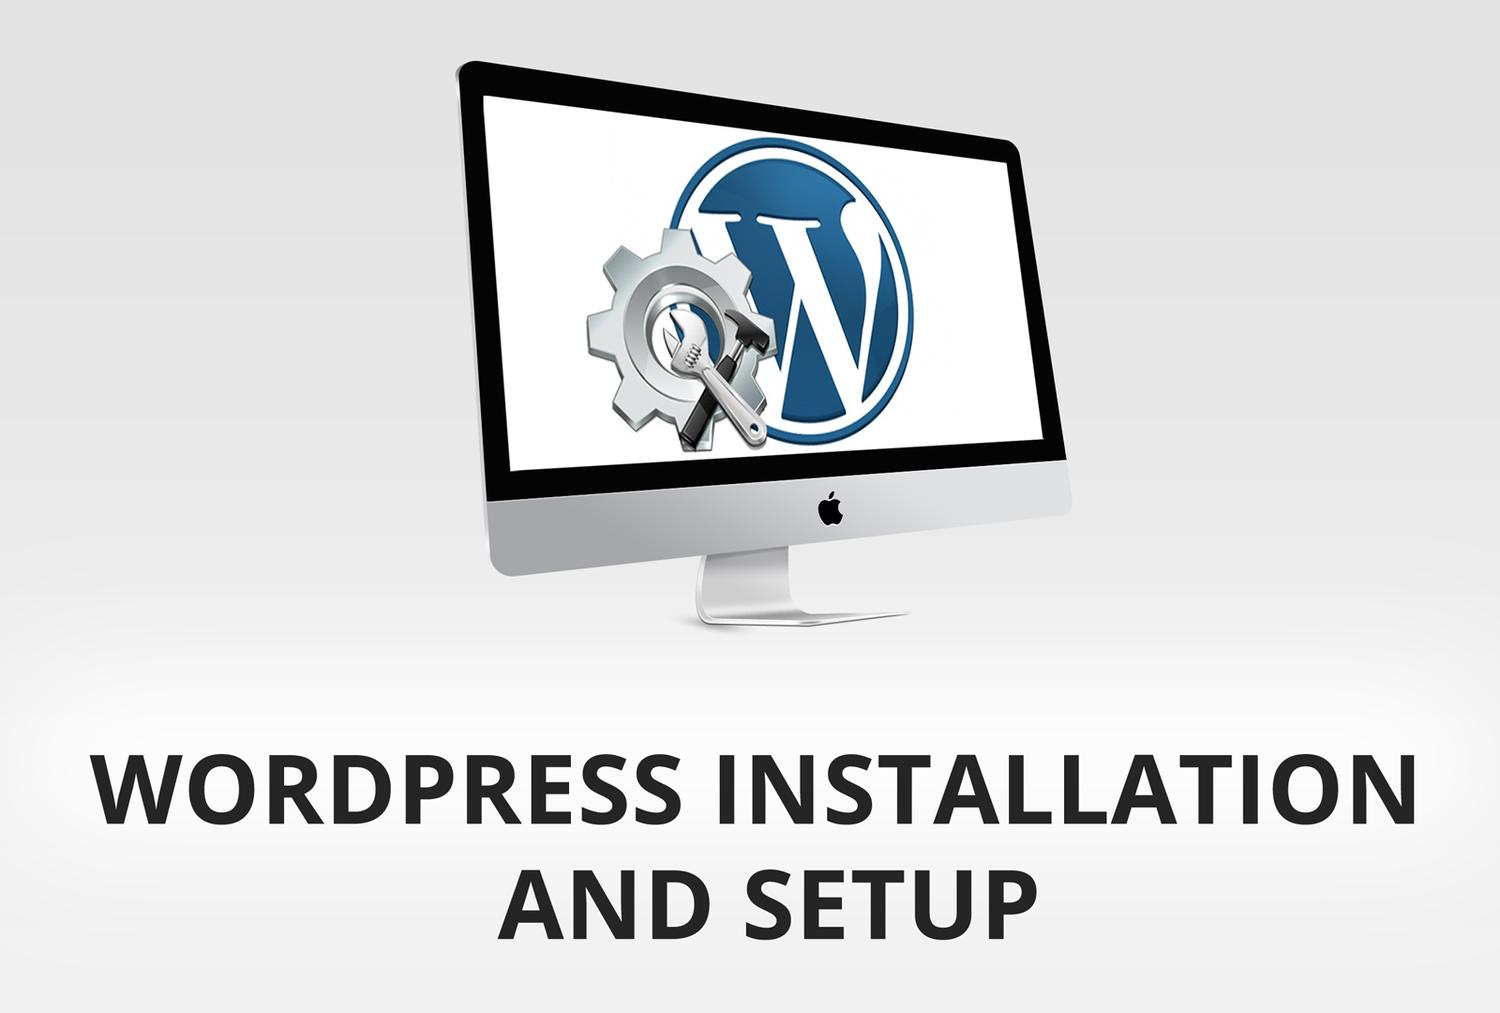 WordPress Installation Service by bkninja - 83962